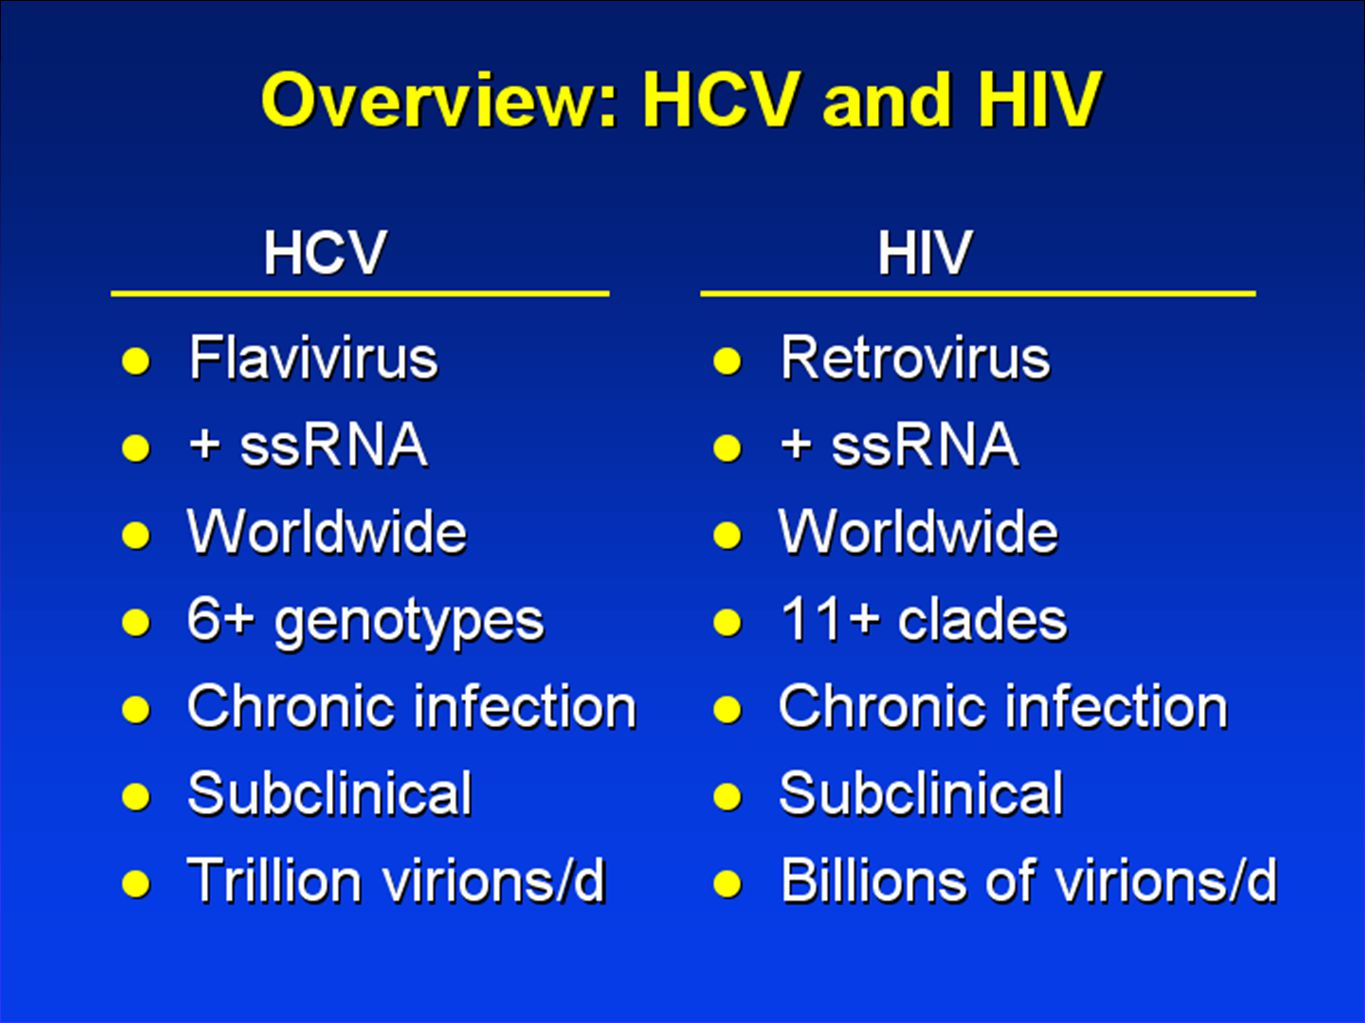 Modes of Transmission HCV HCV  Primarily through blood and blood products, IDU  Historical data now supports sexual risk of ~10-12% over lifetime in discordant couple studies  Perinatal transmission ~7% but increases to 28% in HIV coinfected mothers  Association with intranasal recreational agents like cocaine.